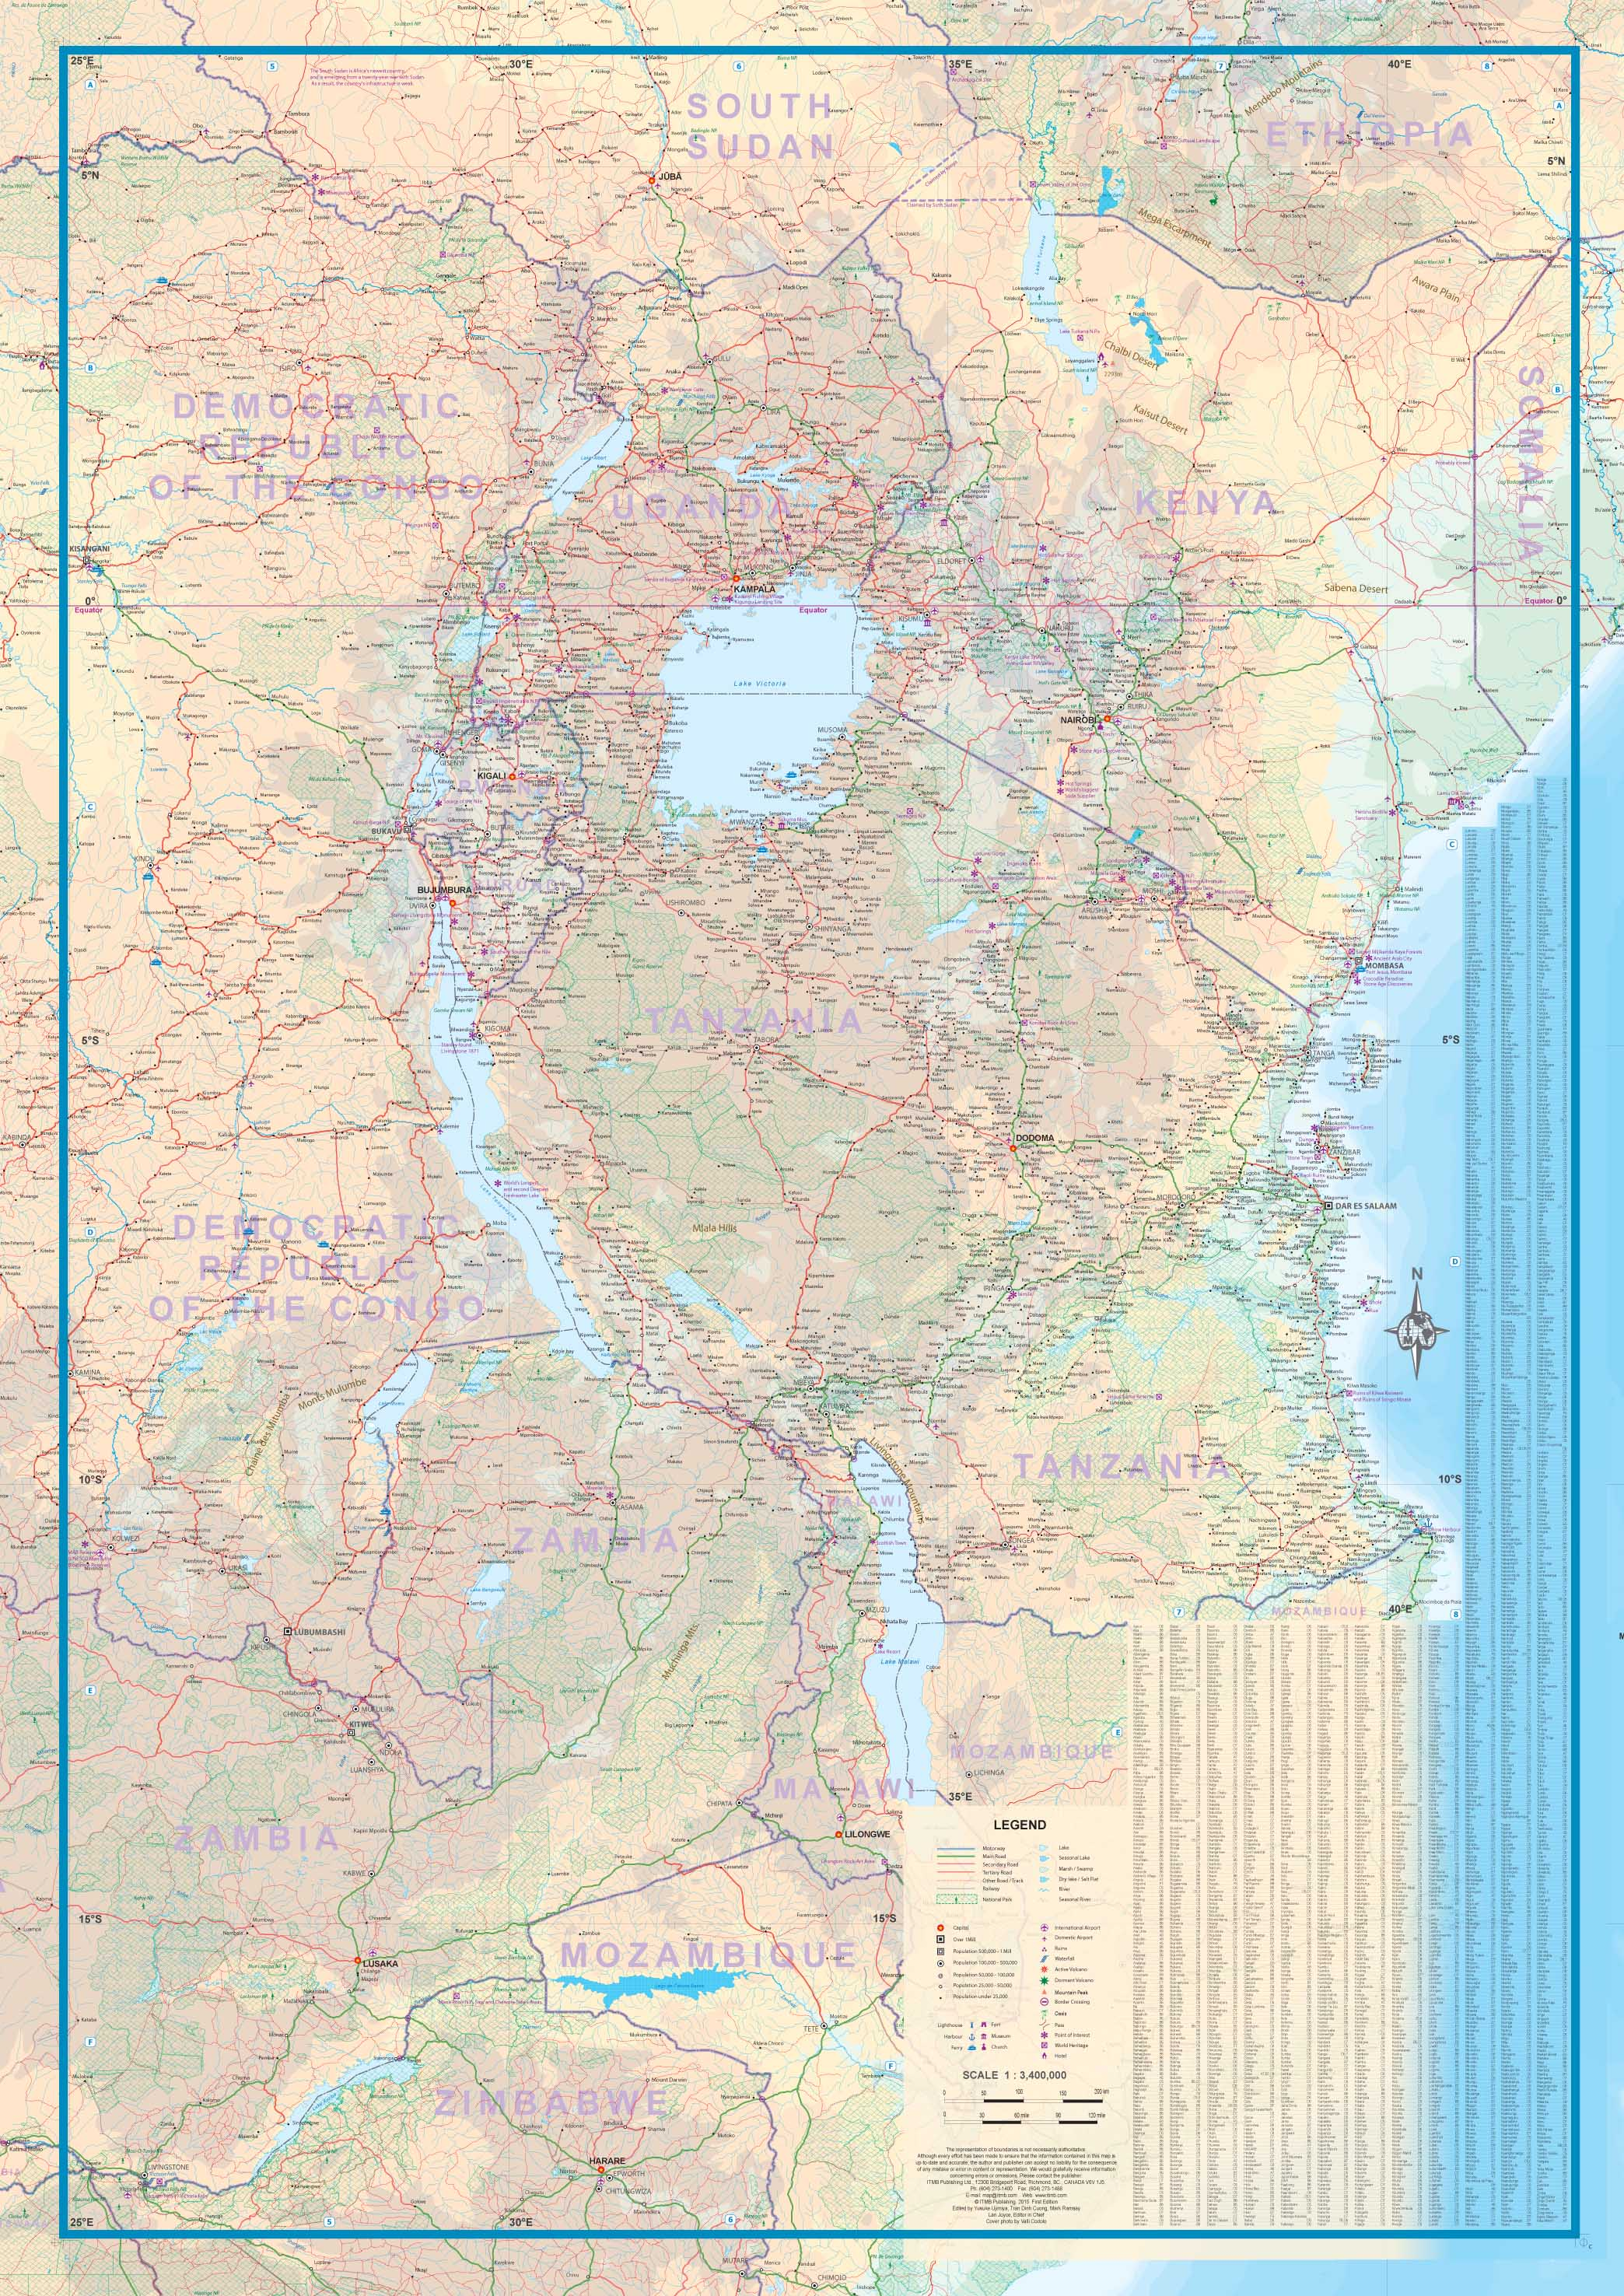 Maps For Travel City Maps Road Maps Guides Globes Topographic - Argentina map equator